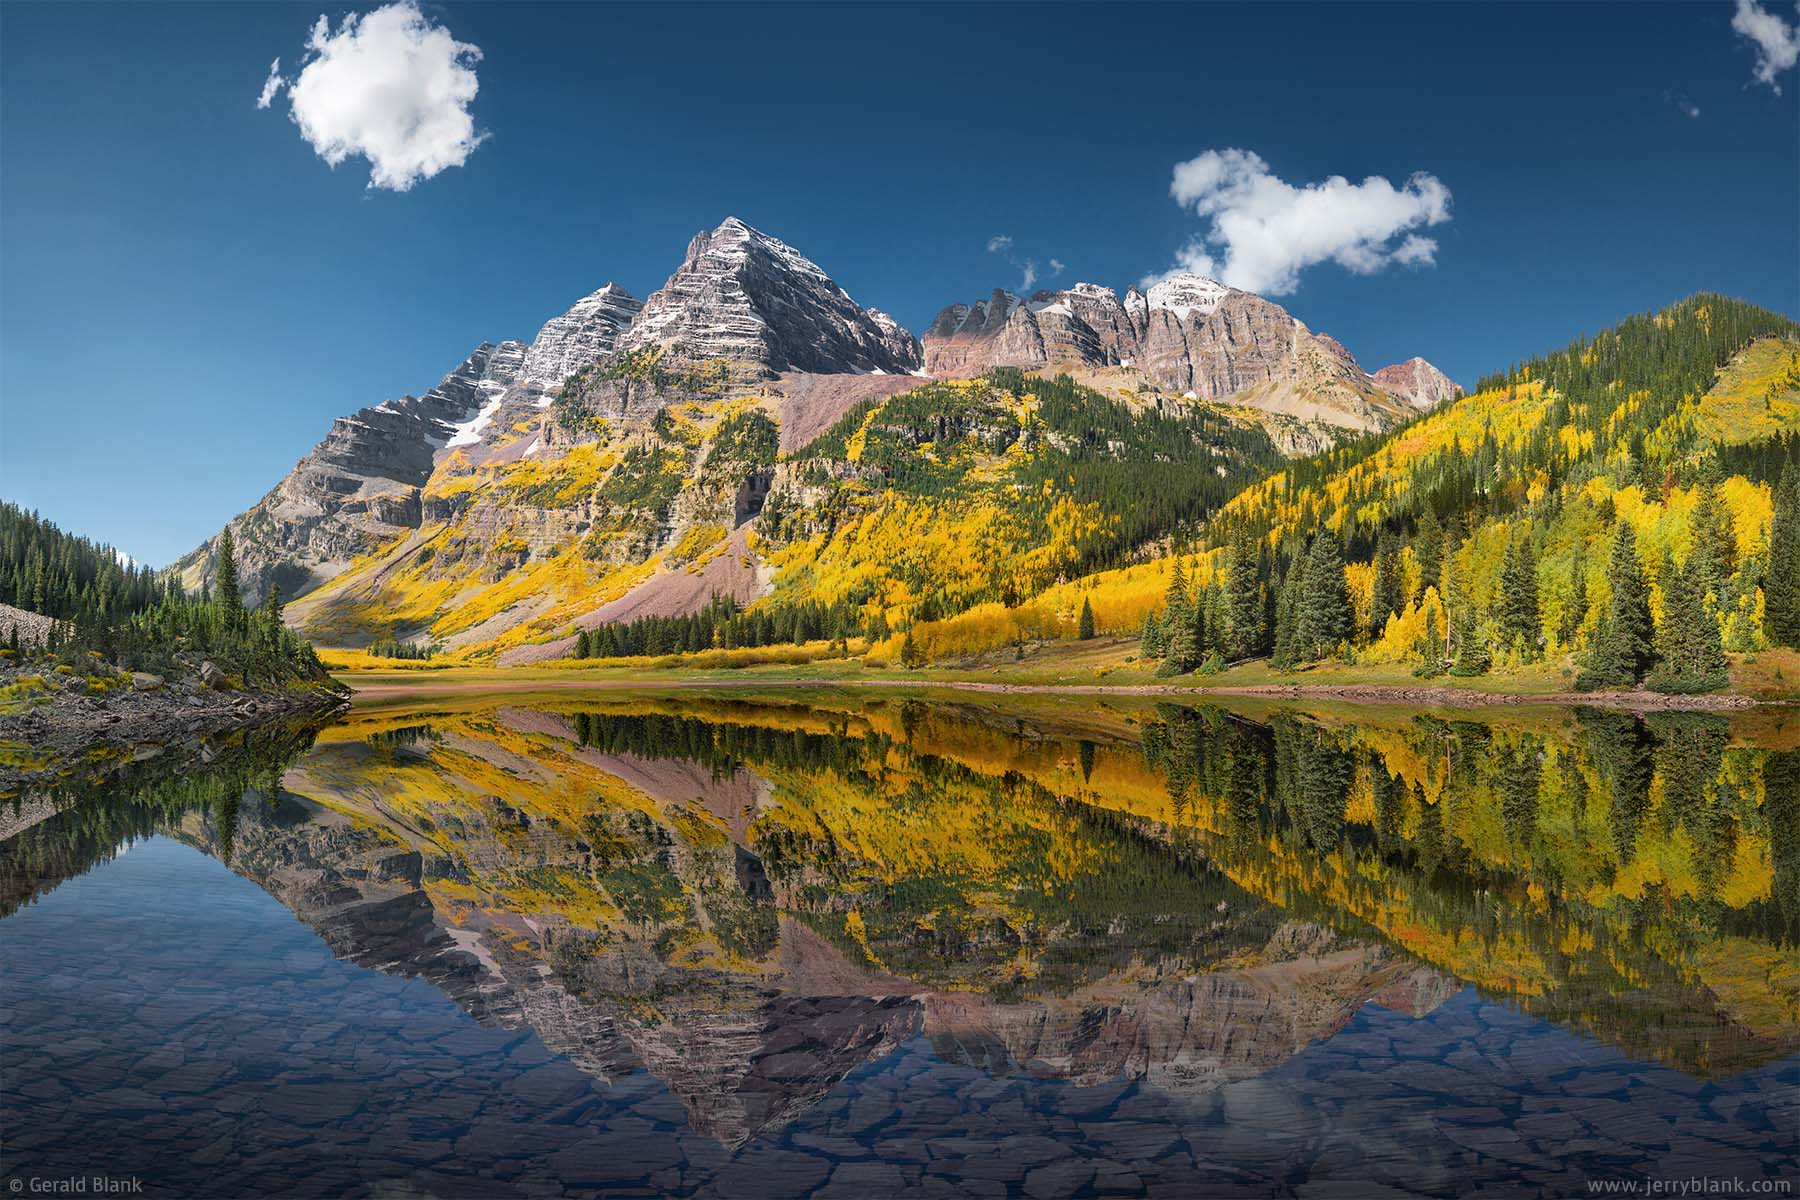 #41199 - Maroon Peak, flanked by autumn color, is reflected in the waters of Crater Lake, in Colorado's Maroon-Snowmass Wilderness Area - photo by Jerry Blank